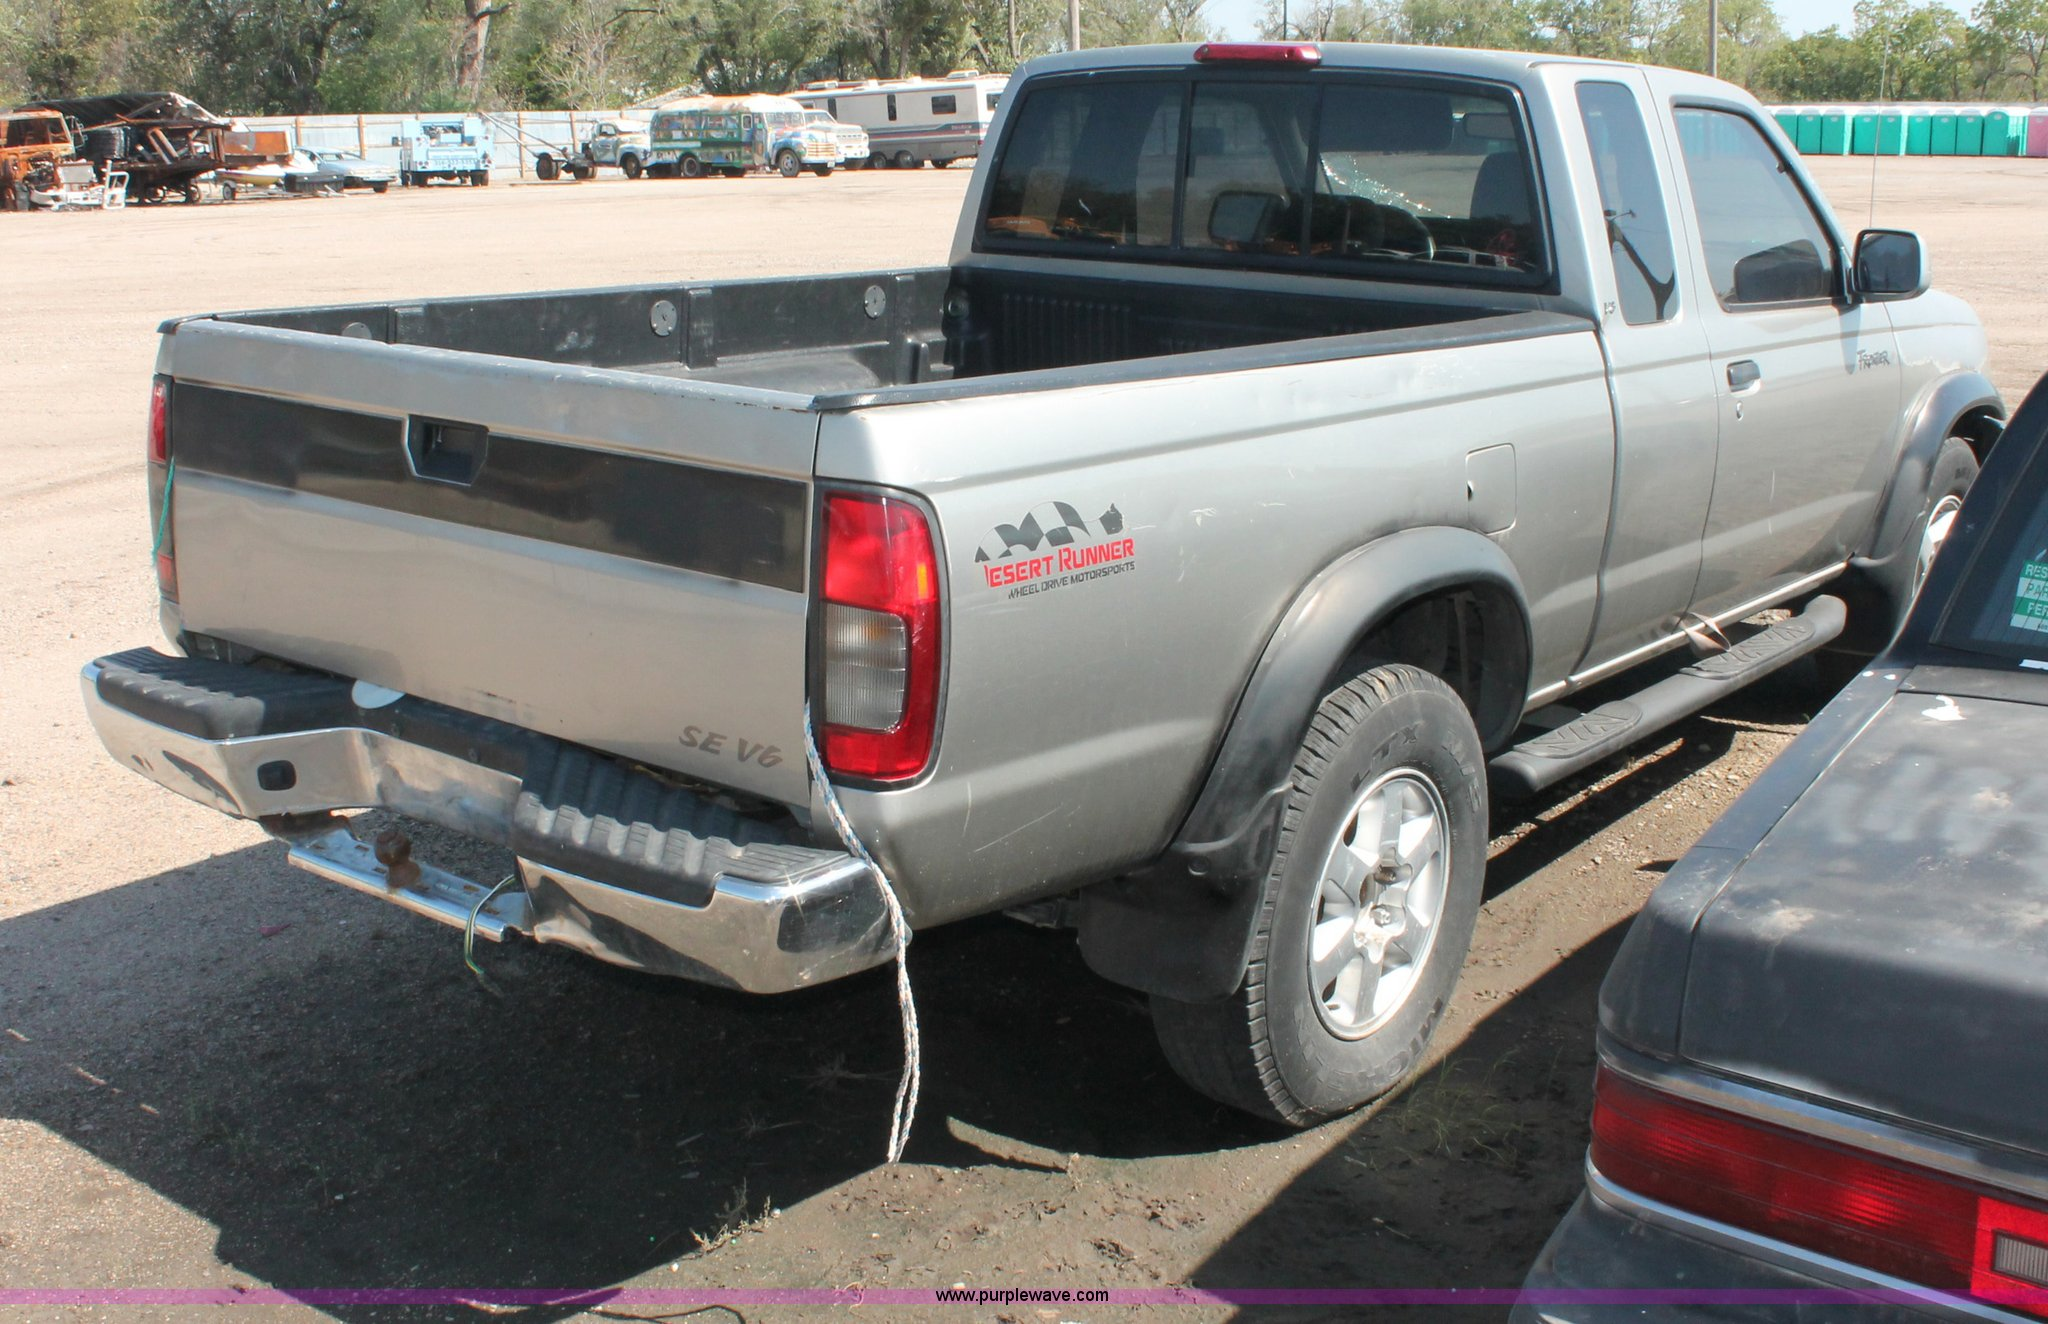 2000 Nissan Frontier Se Desert Runner King Cab Pickup Truck Trailer Wiring Full Size In New Window